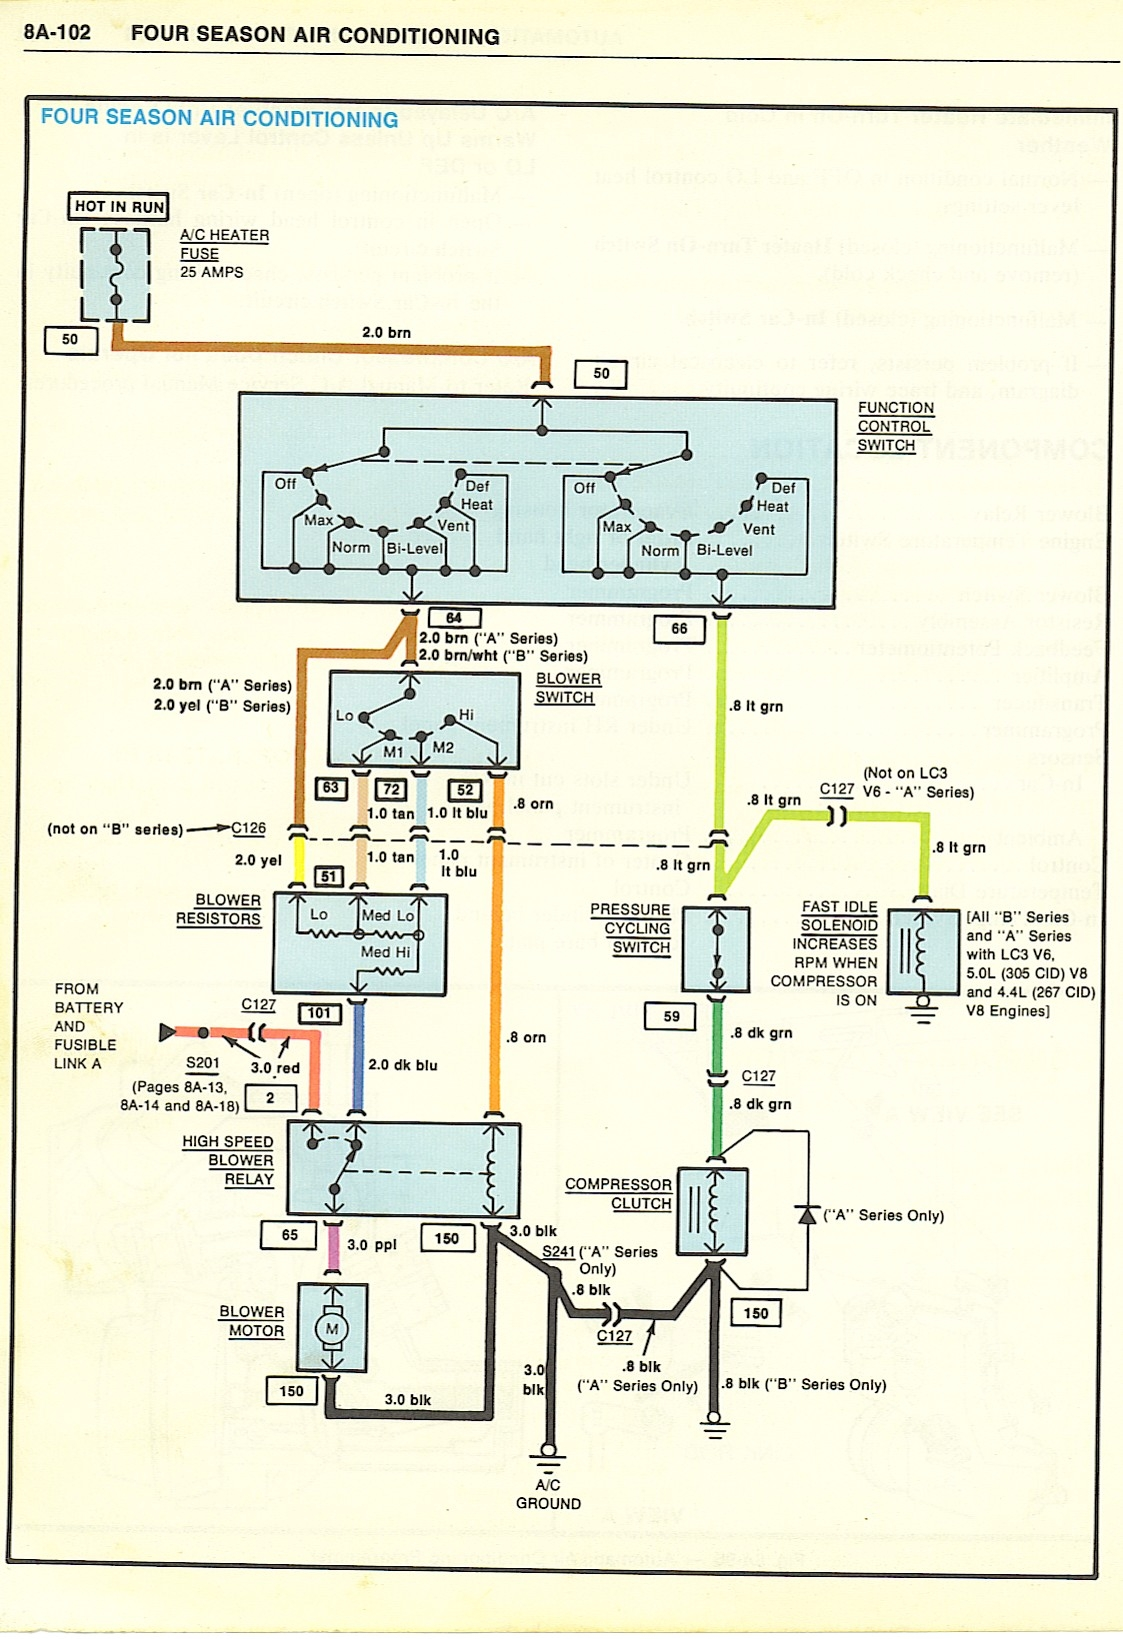 1968 FourSeasonAirConditioner chevy diagrams window air conditioner wiring diagram pdf at eliteediting.co